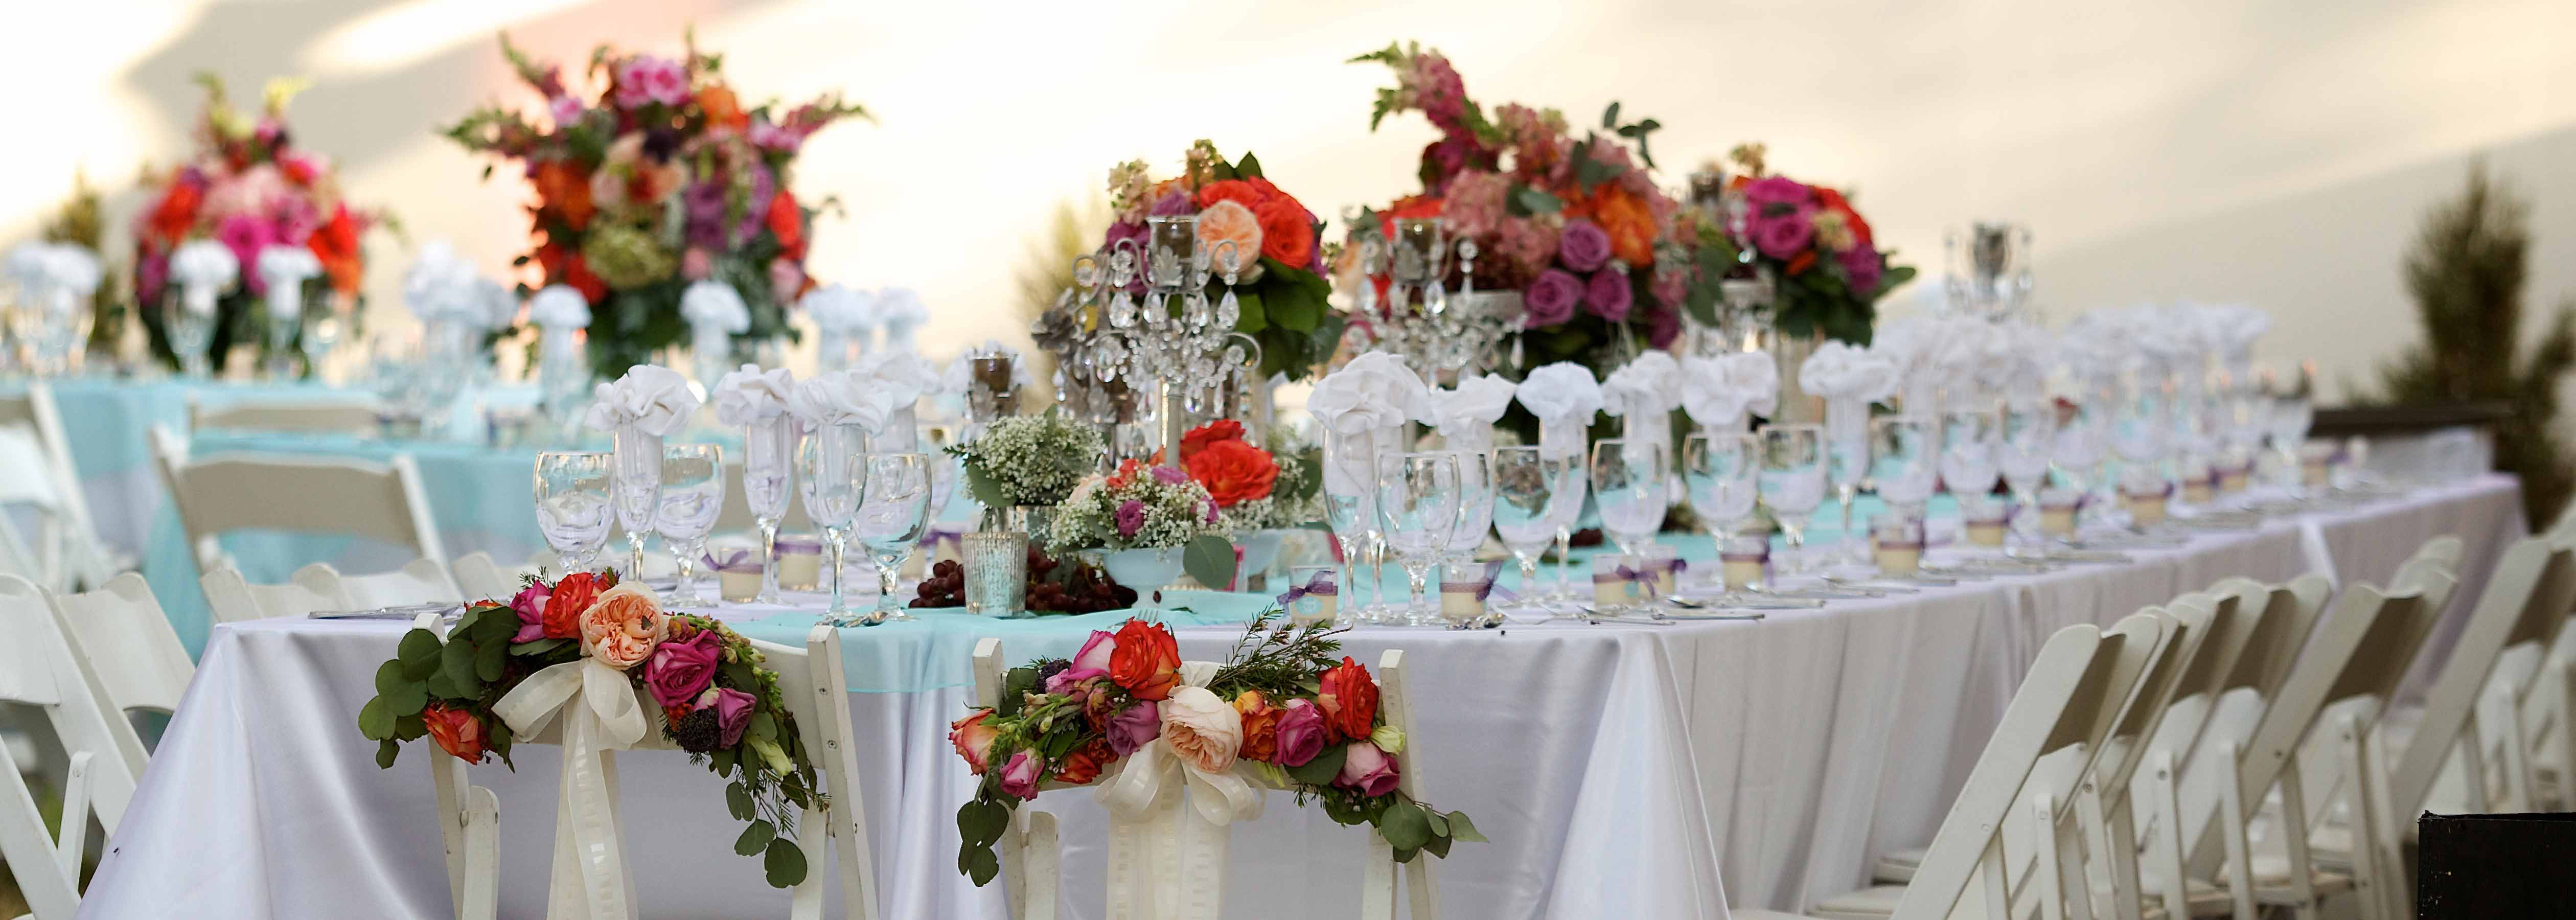 wedding-table-2